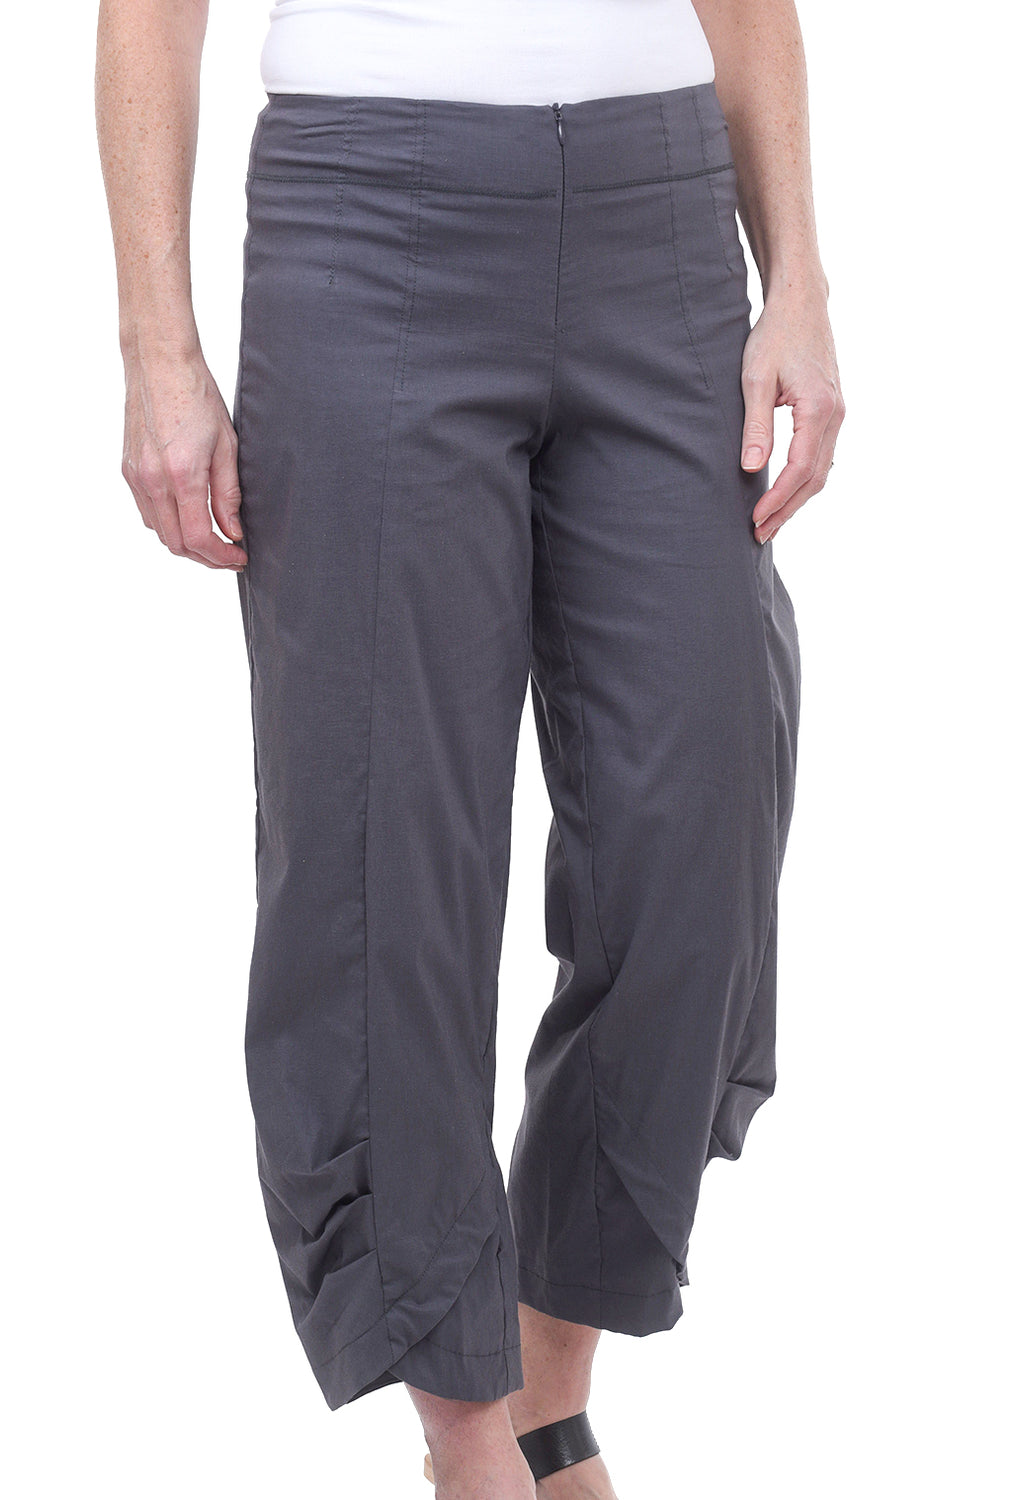 Porto Sheriff Pants, Shale Gray